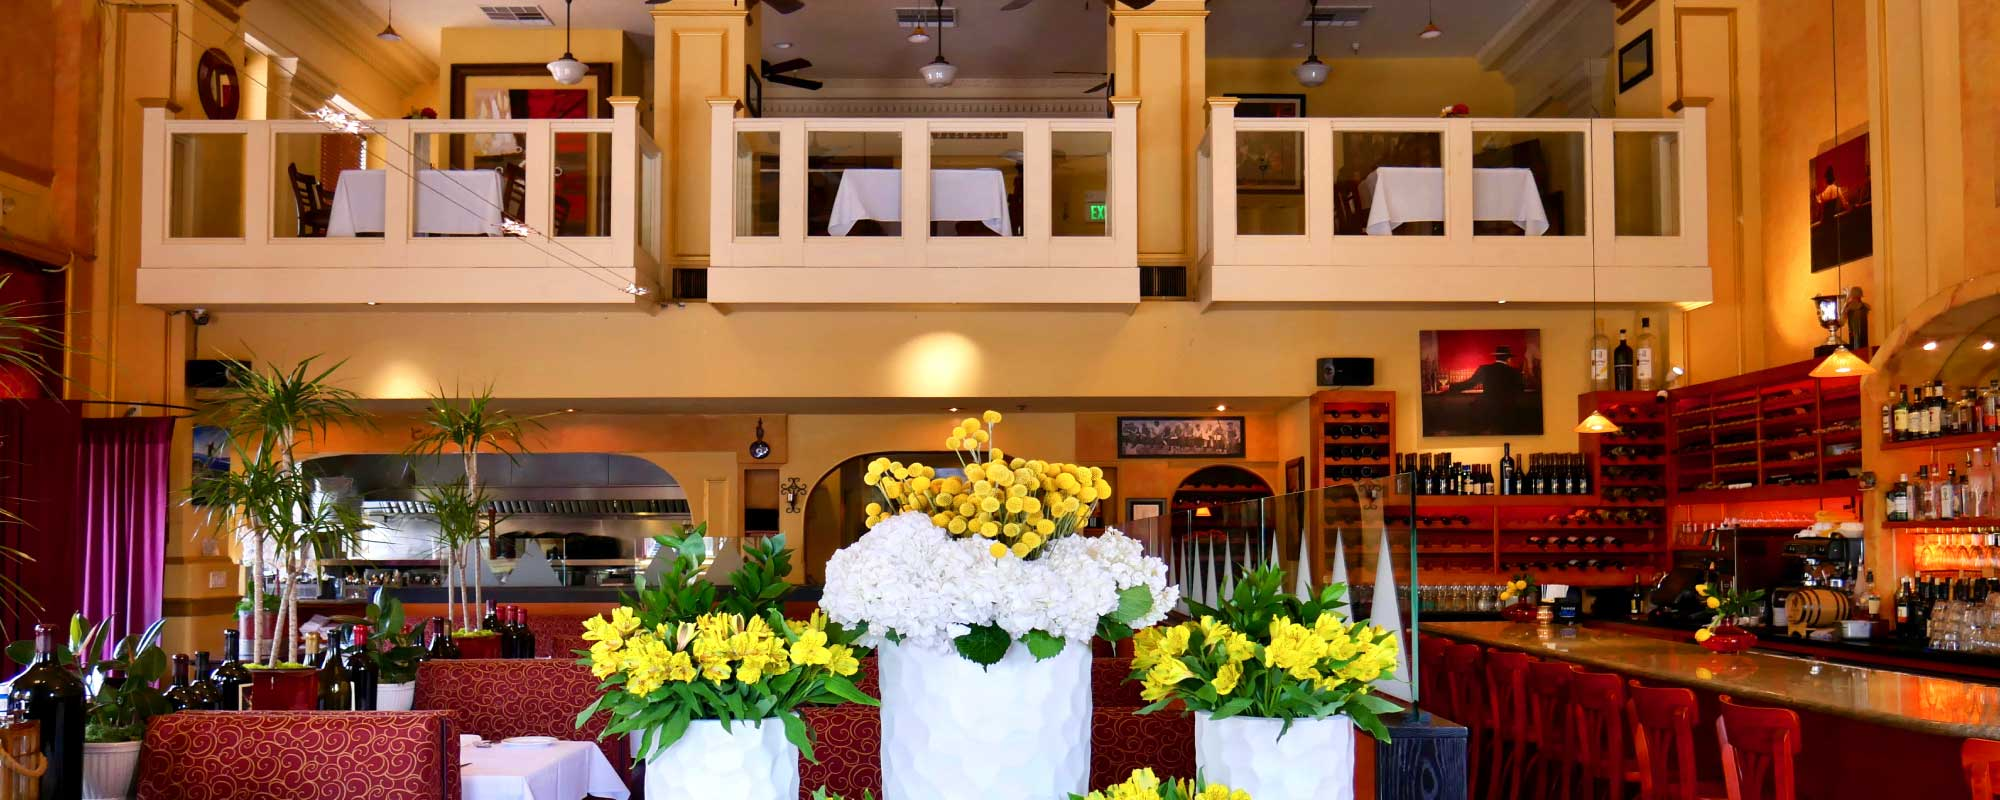 Napa Valley Dining Restaurant